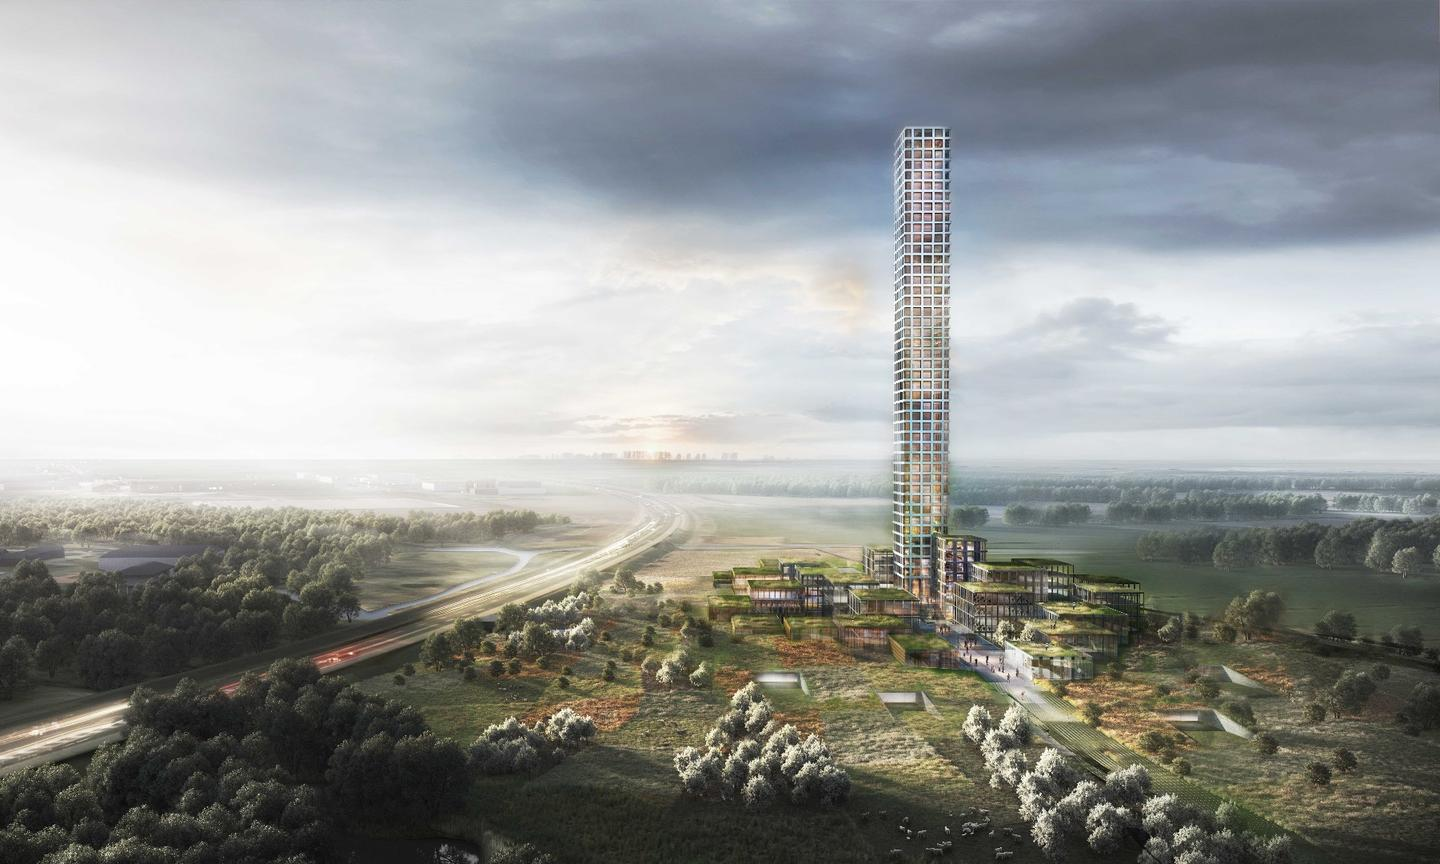 Assuming it goes ahead, the Tower & Village skyscraper will rise to a height of 320 m (1,050 ft)